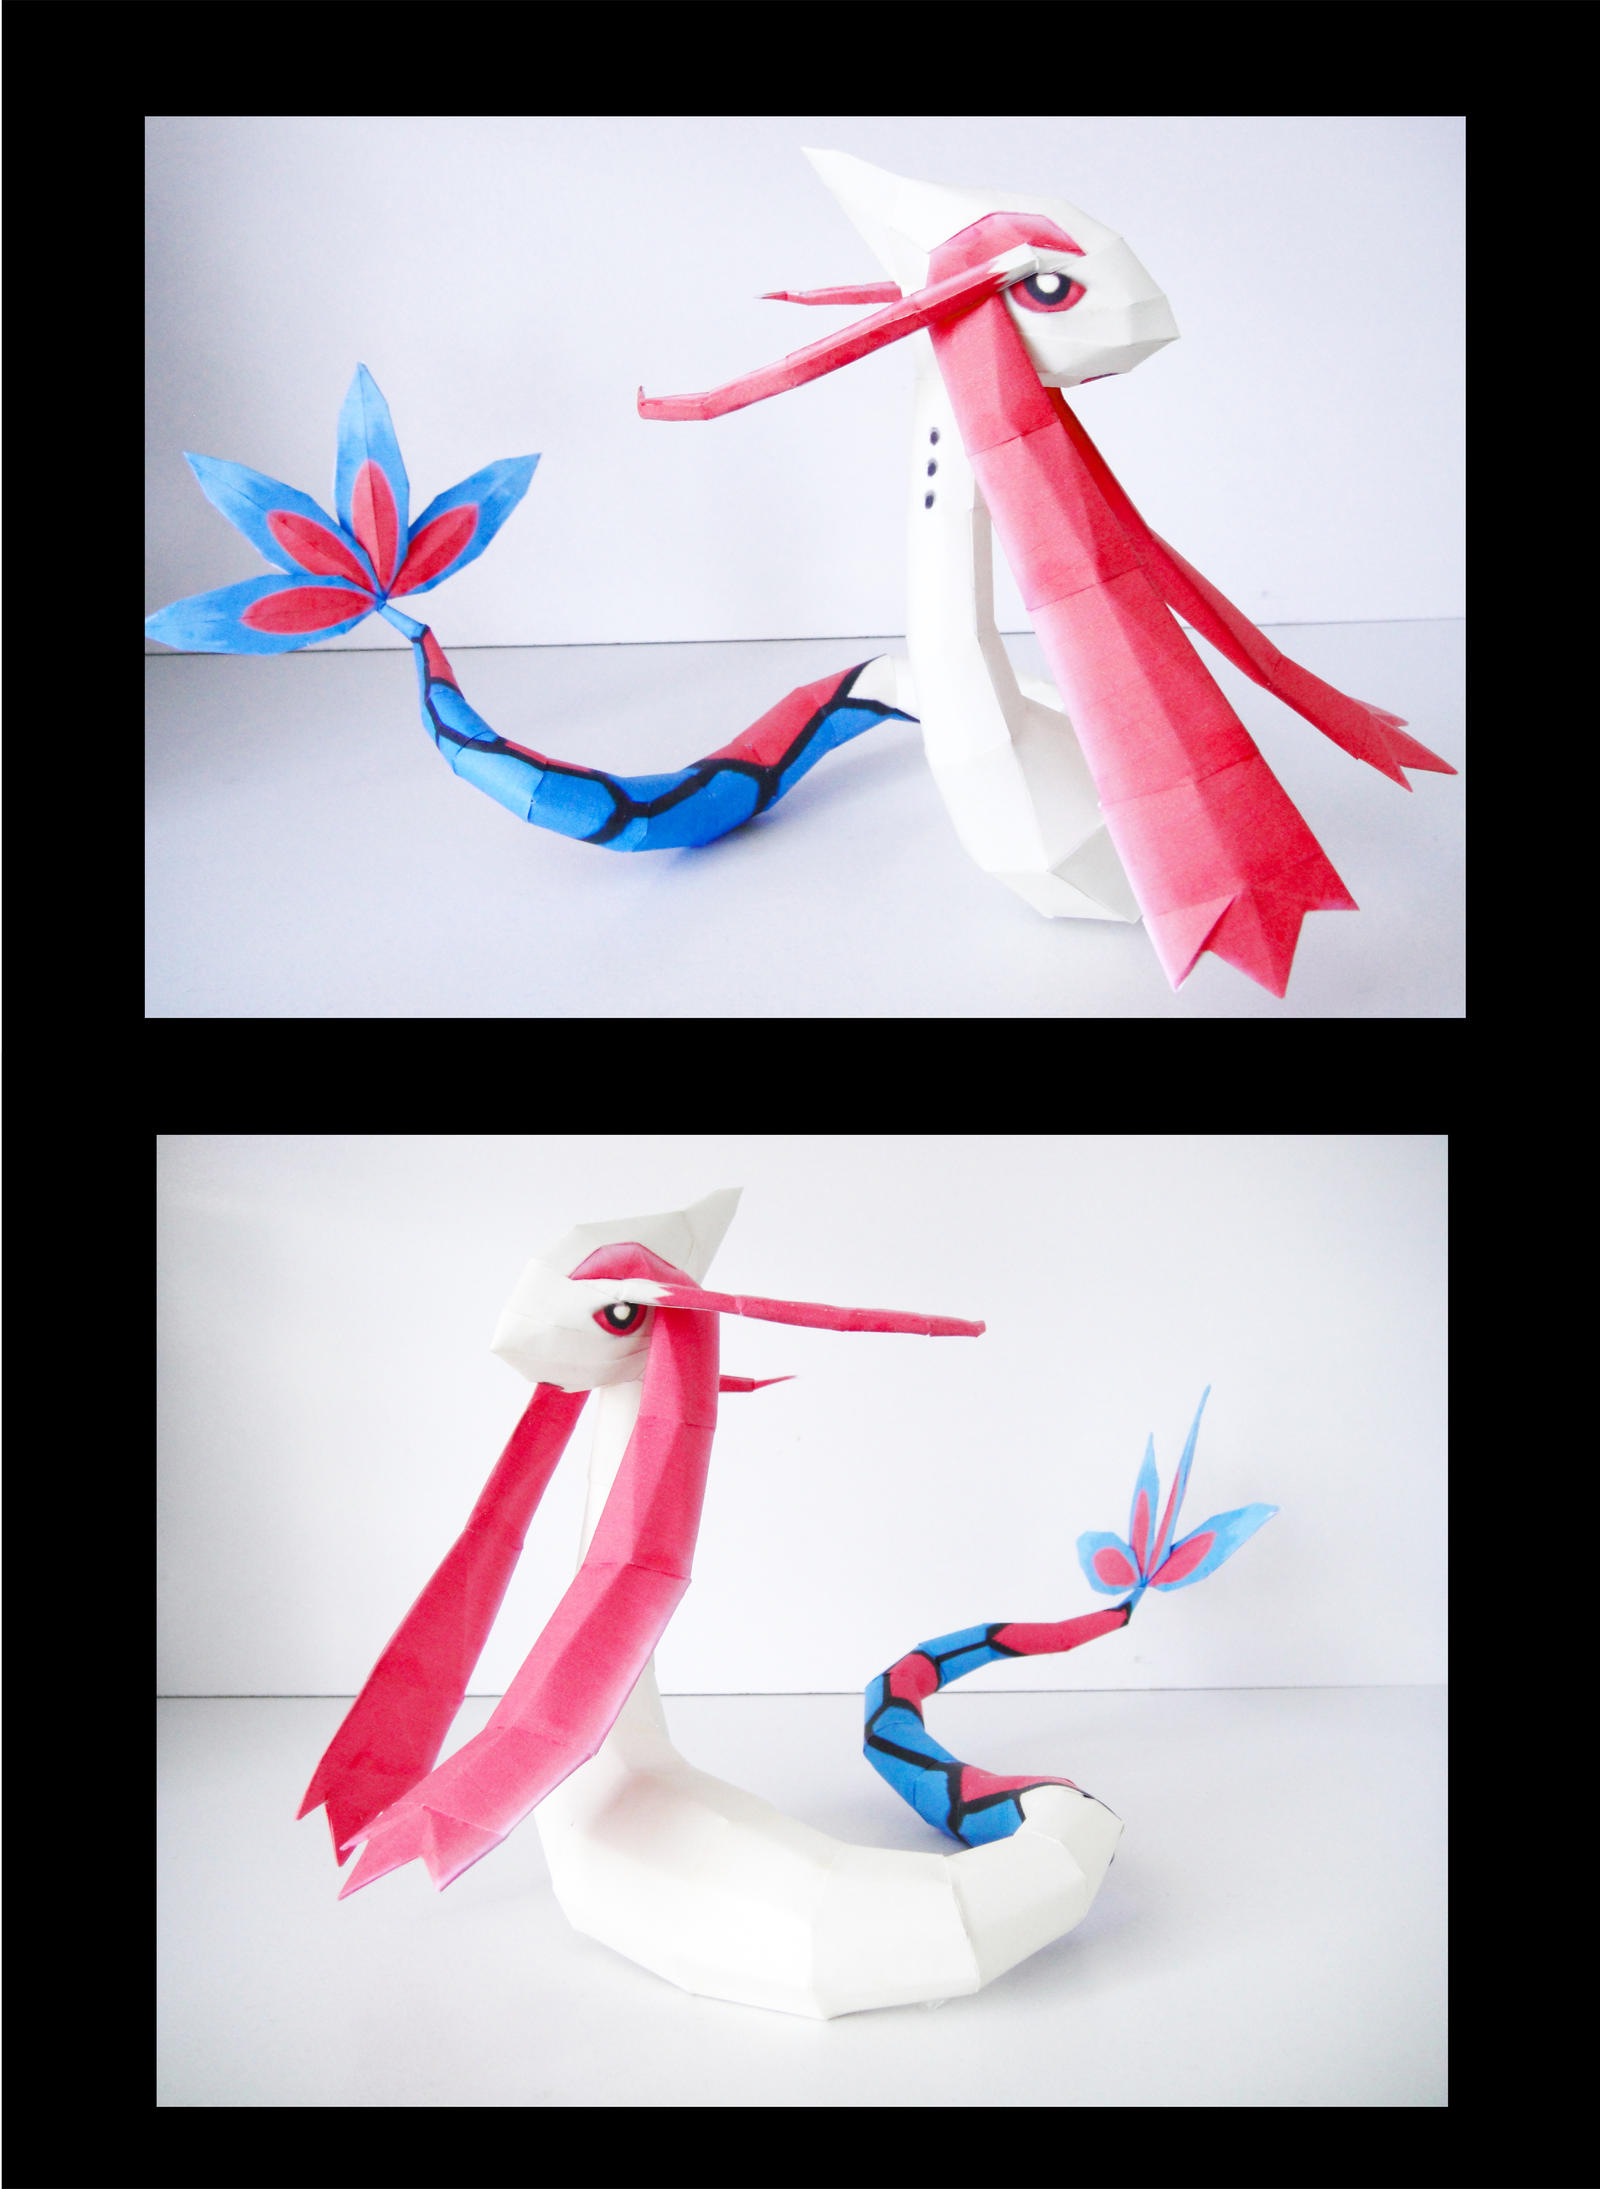 Milotic Papercraft by thepapersmith